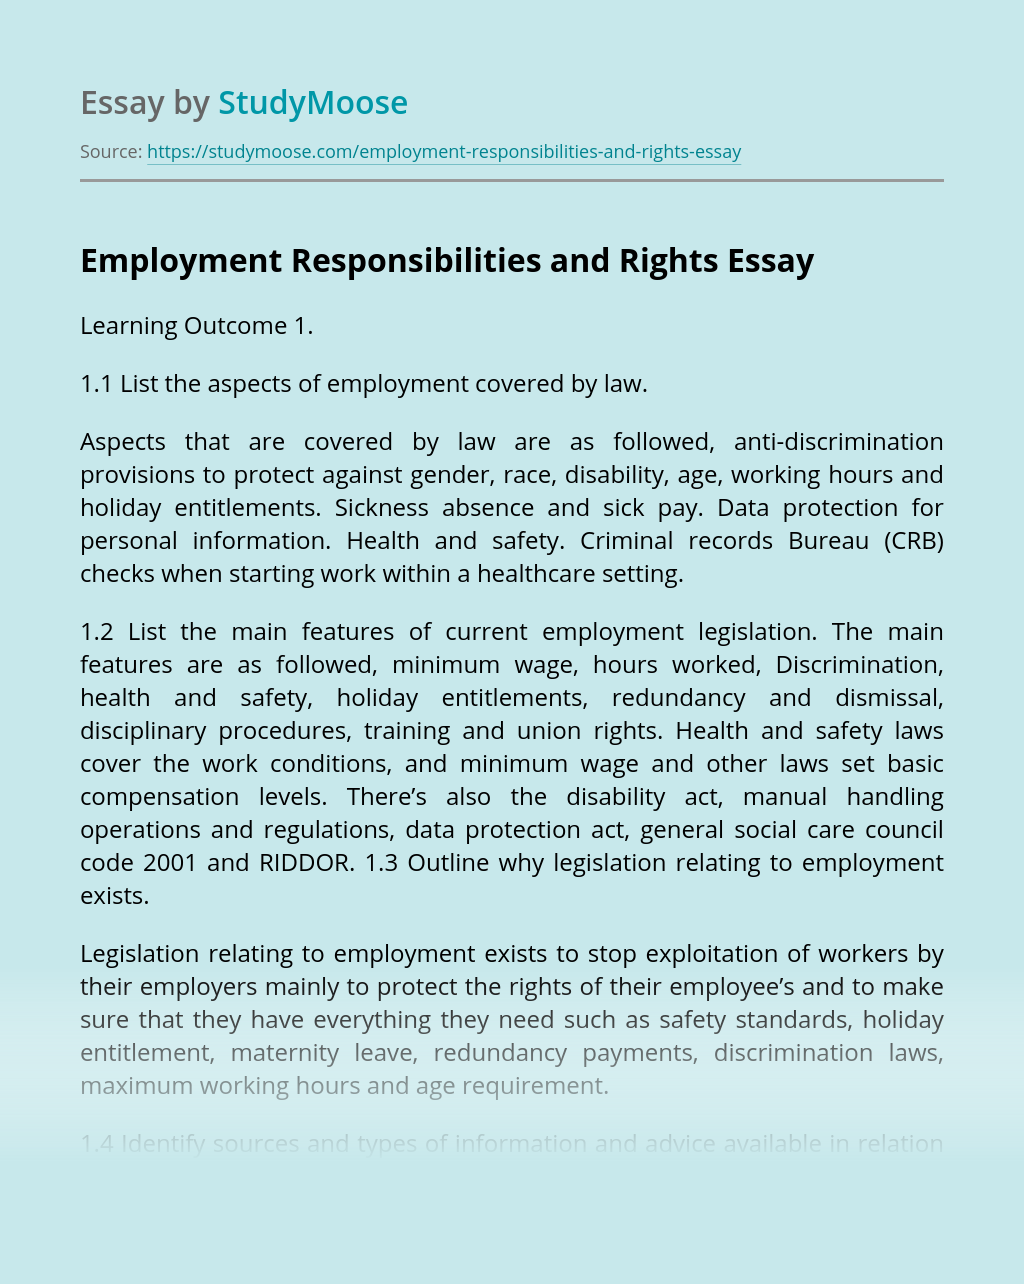 Employment Responsibilities and Rights